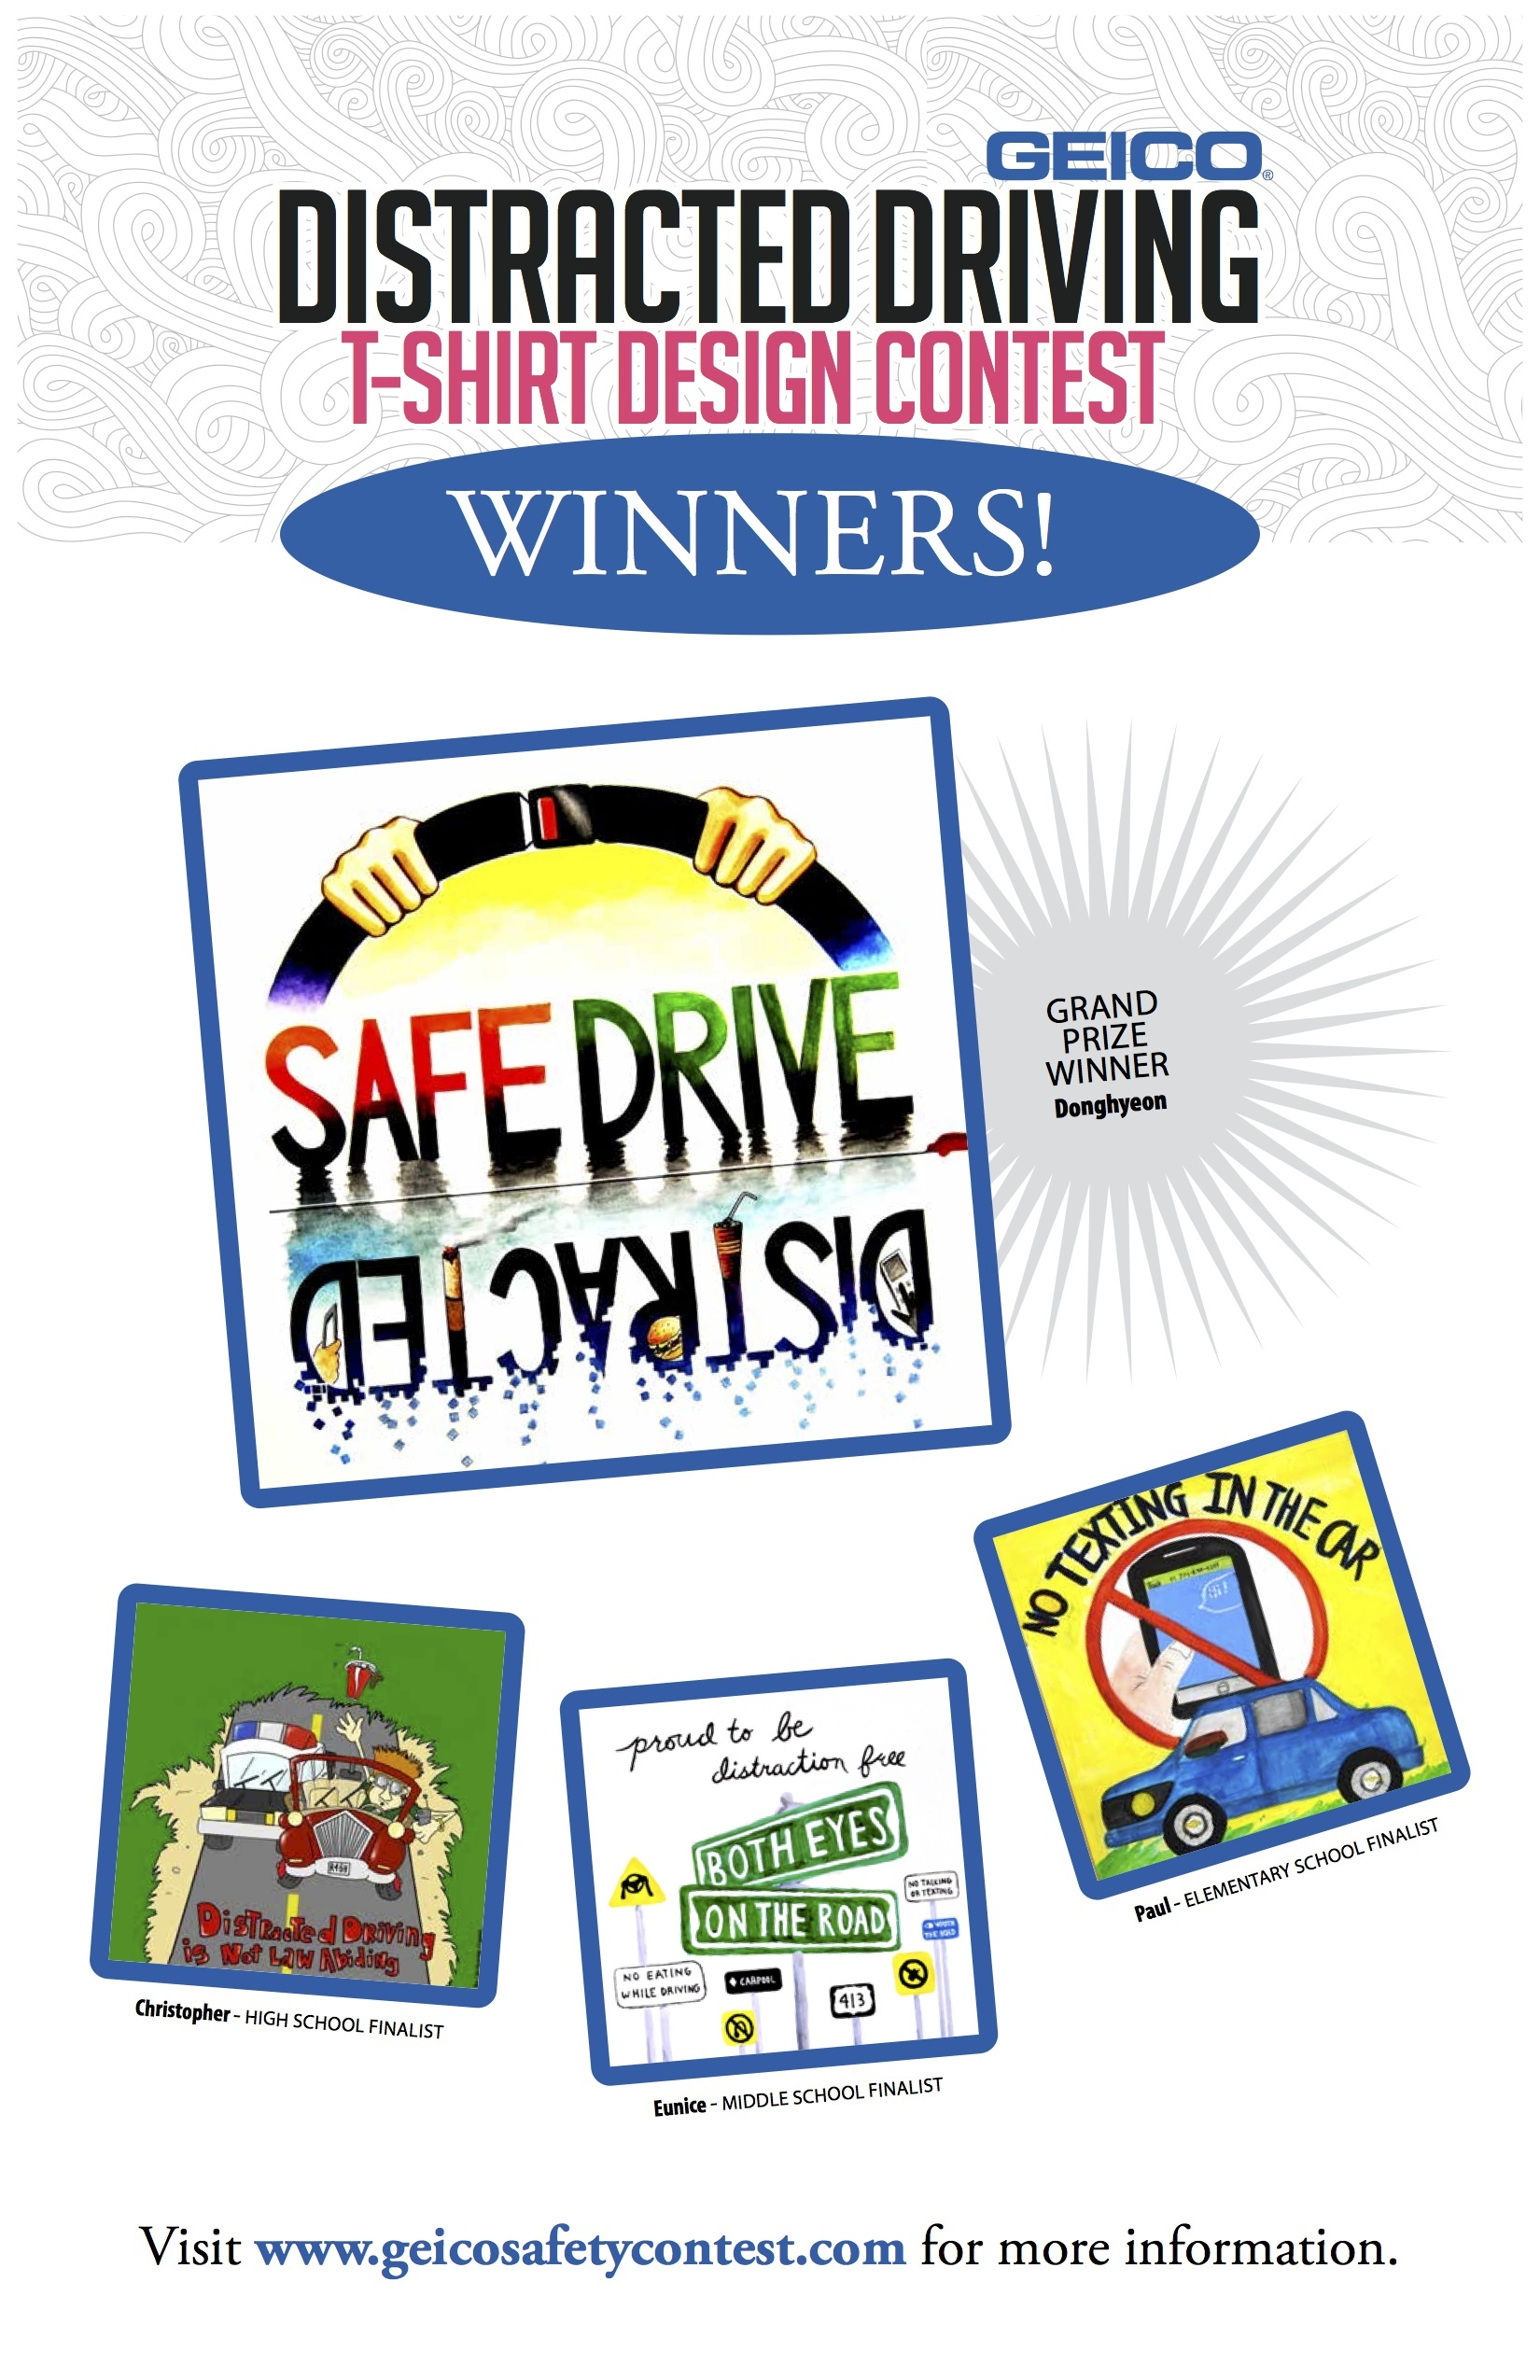 Winners of GEICO's distracted driving t-shirt design contest. (image: Business Wire)